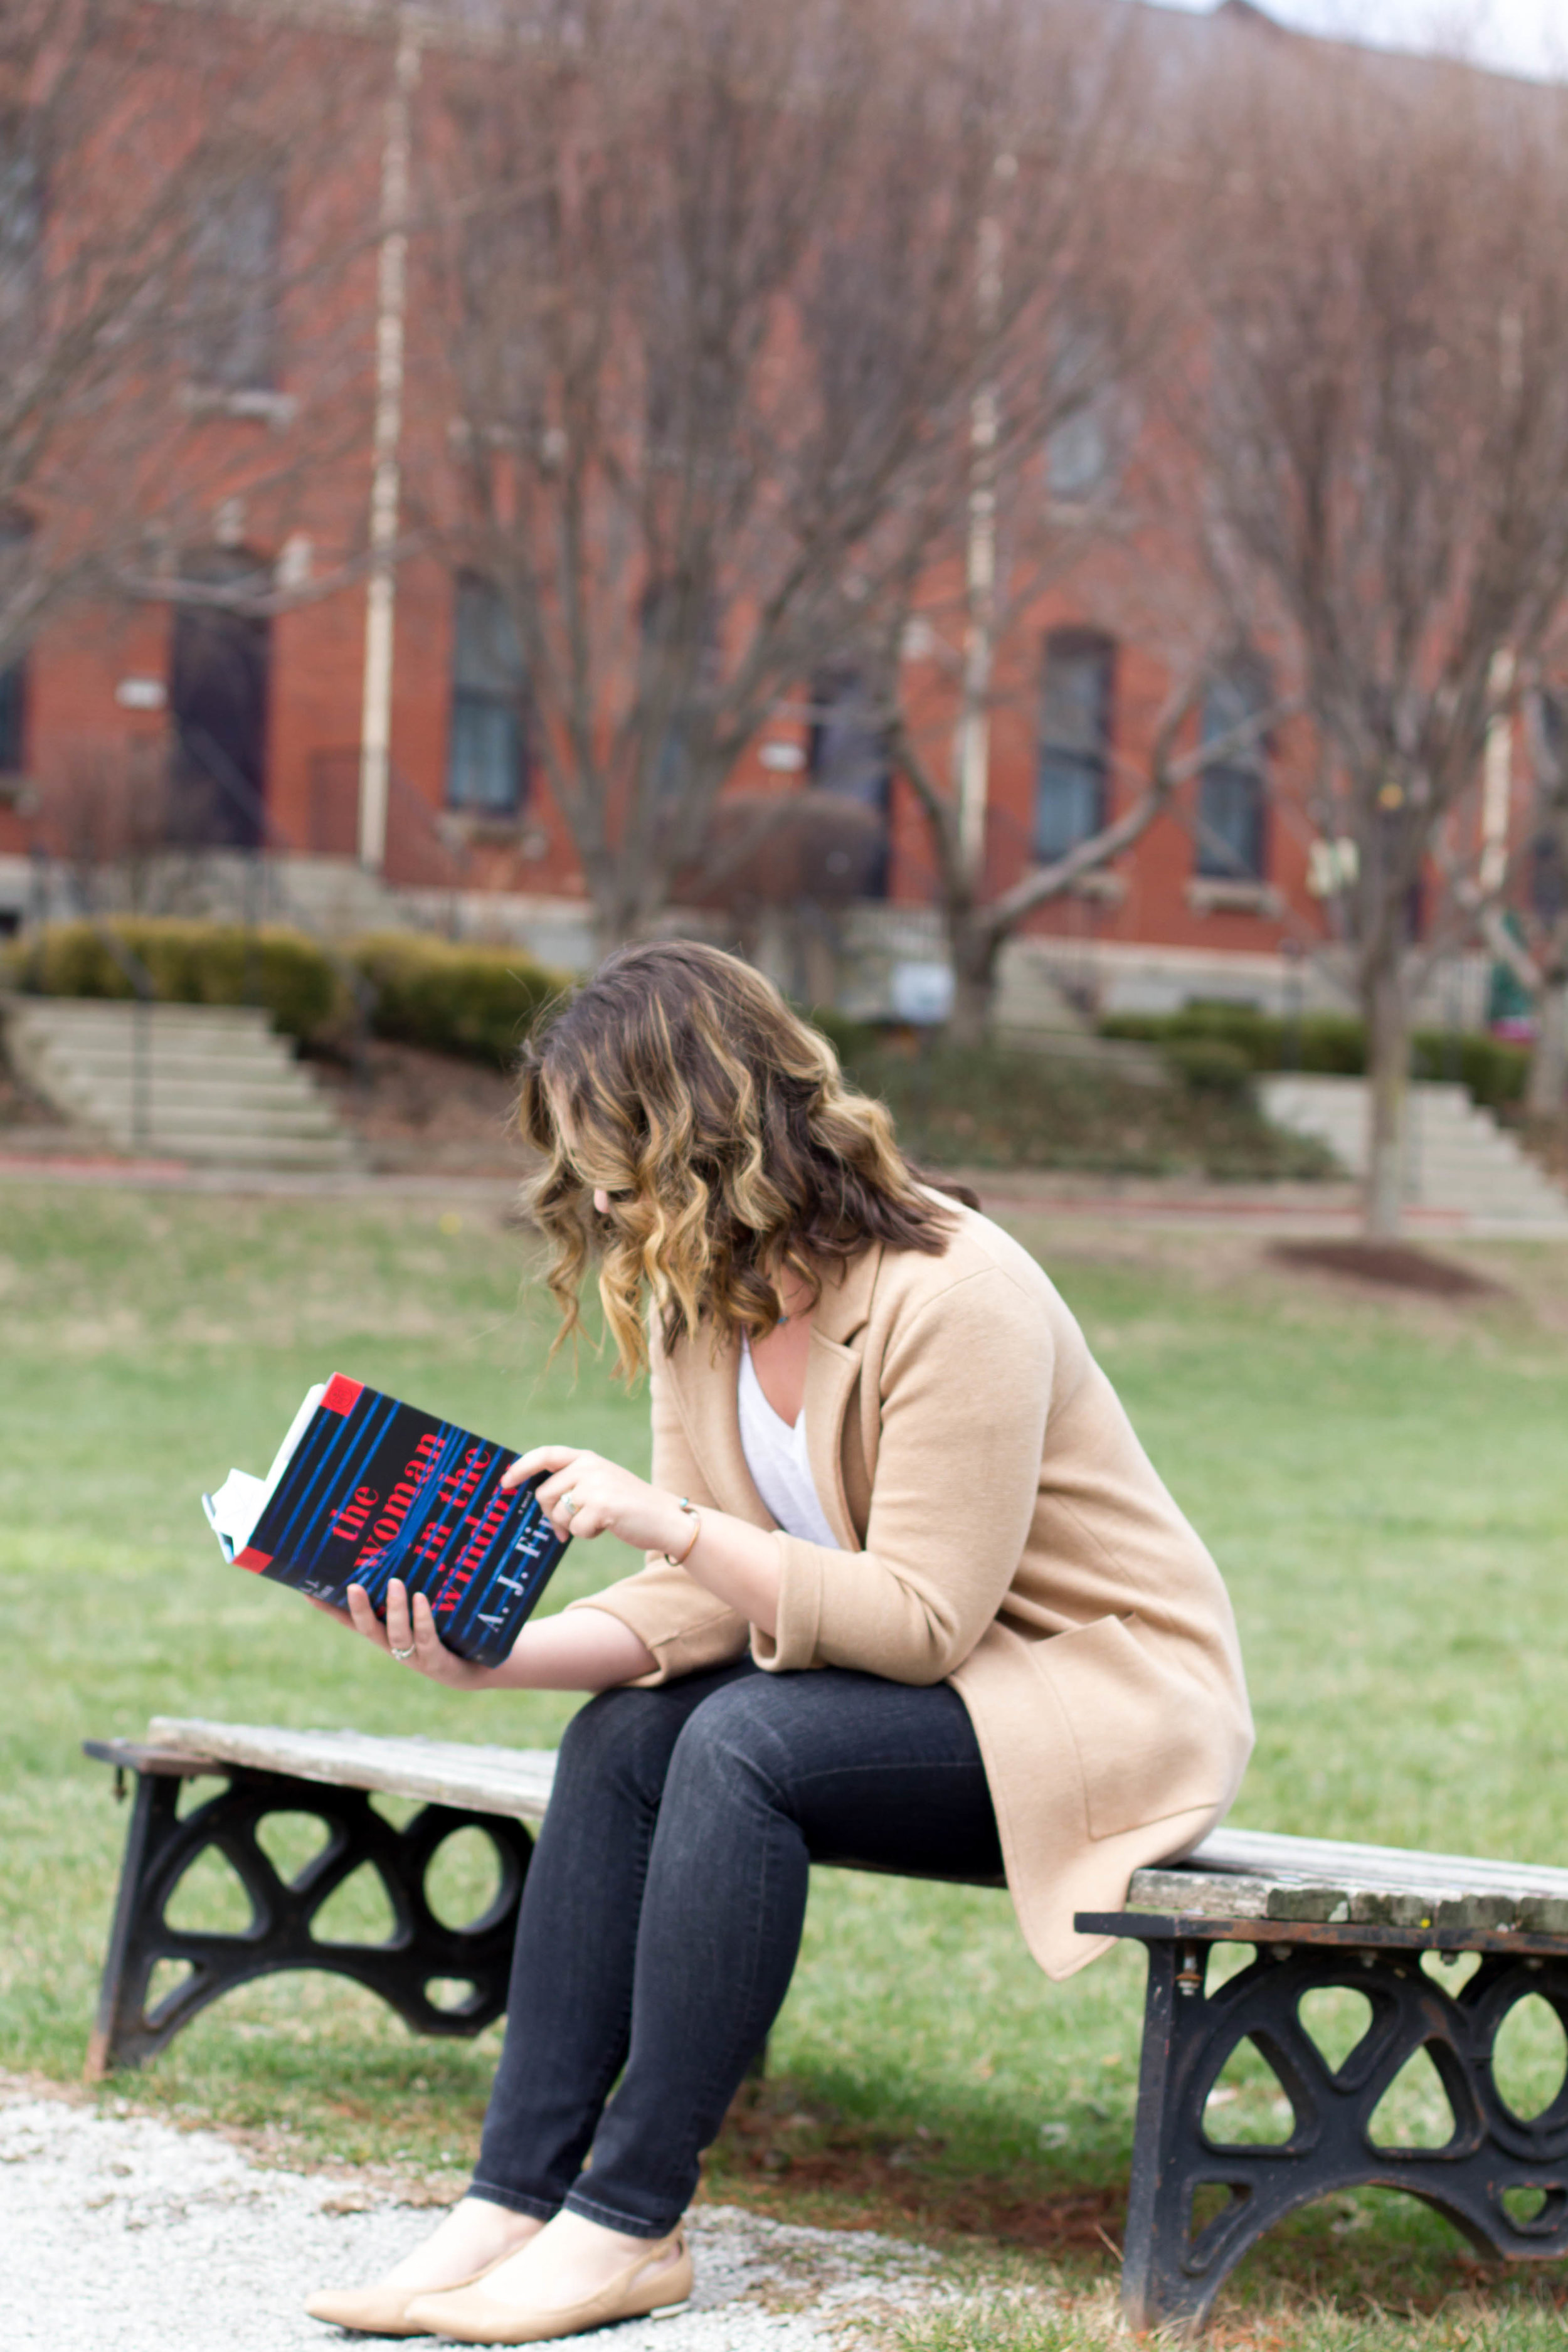 Reading The Woman in the Window in New Town at St. Charles, MO